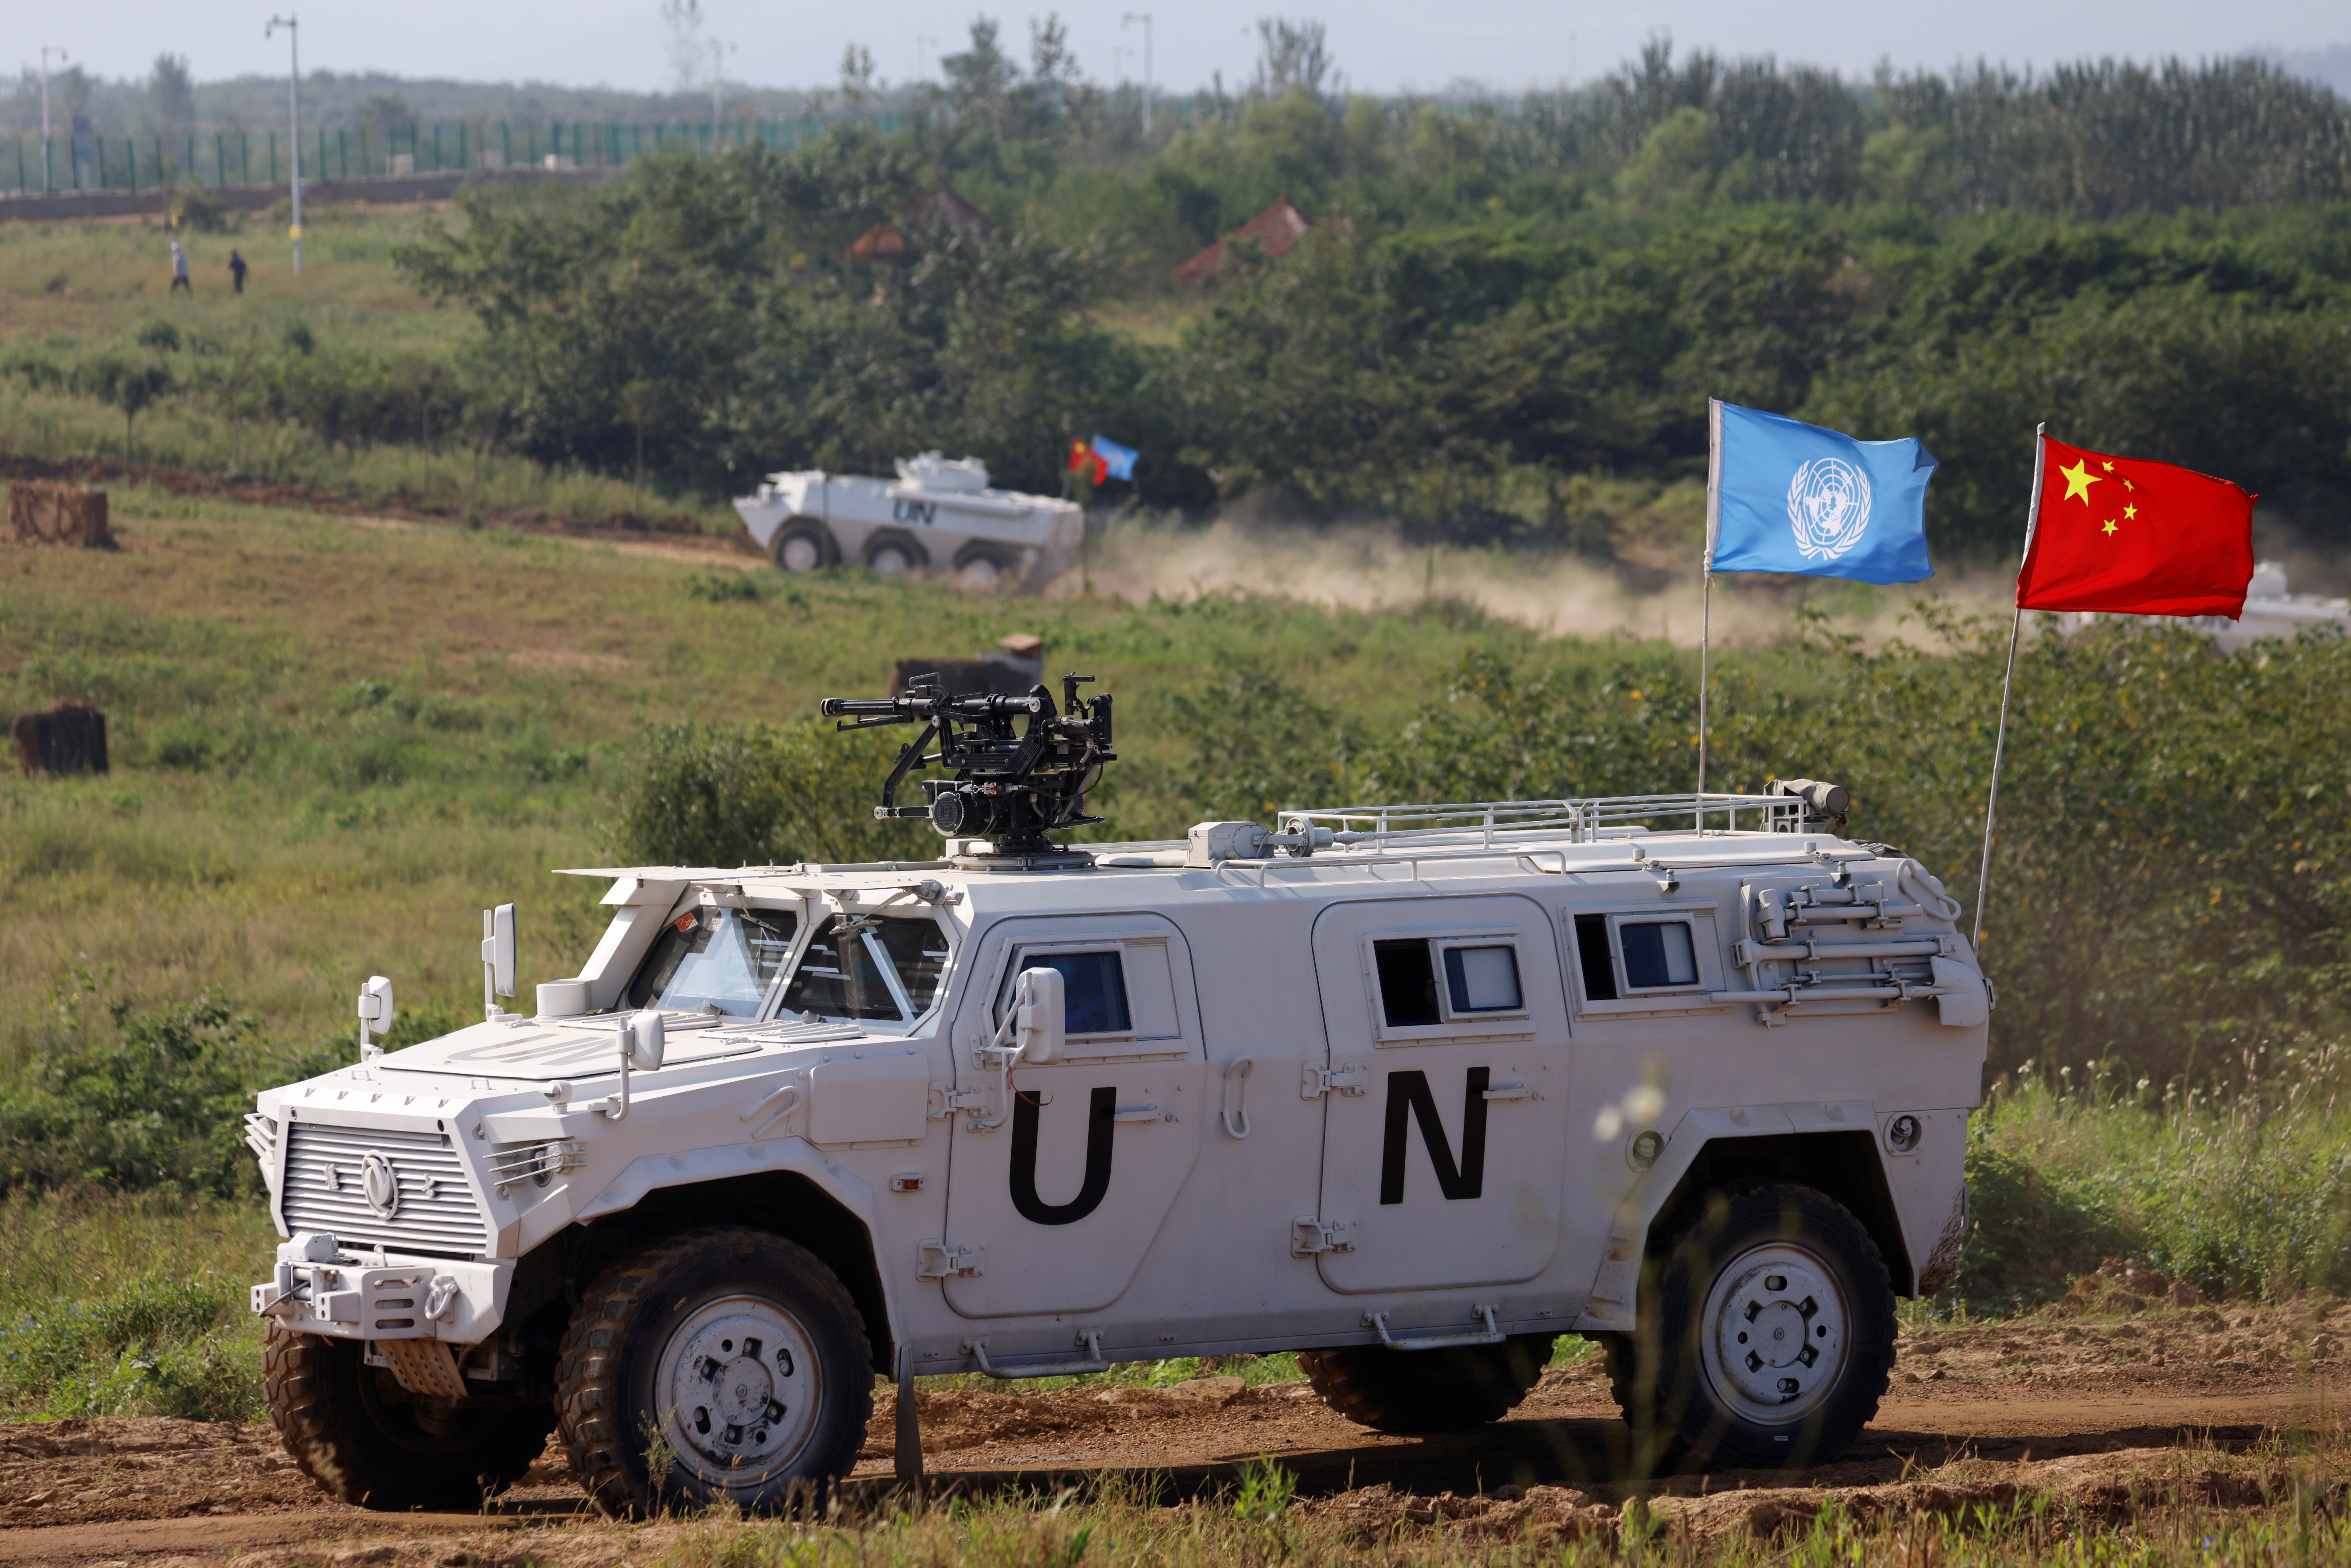 Armored vehicles with flags of the United Nations and China are seen during a multinational U.N. peacekeeping military exercise with troops of the Chinese People's Liberation Army (PLA), Pakistan, Mongolia and Thailand, on the outskirts of Zhumadian, Henan province, China September 15, 2021. REUTERS/Carlos Garcia Rawlins